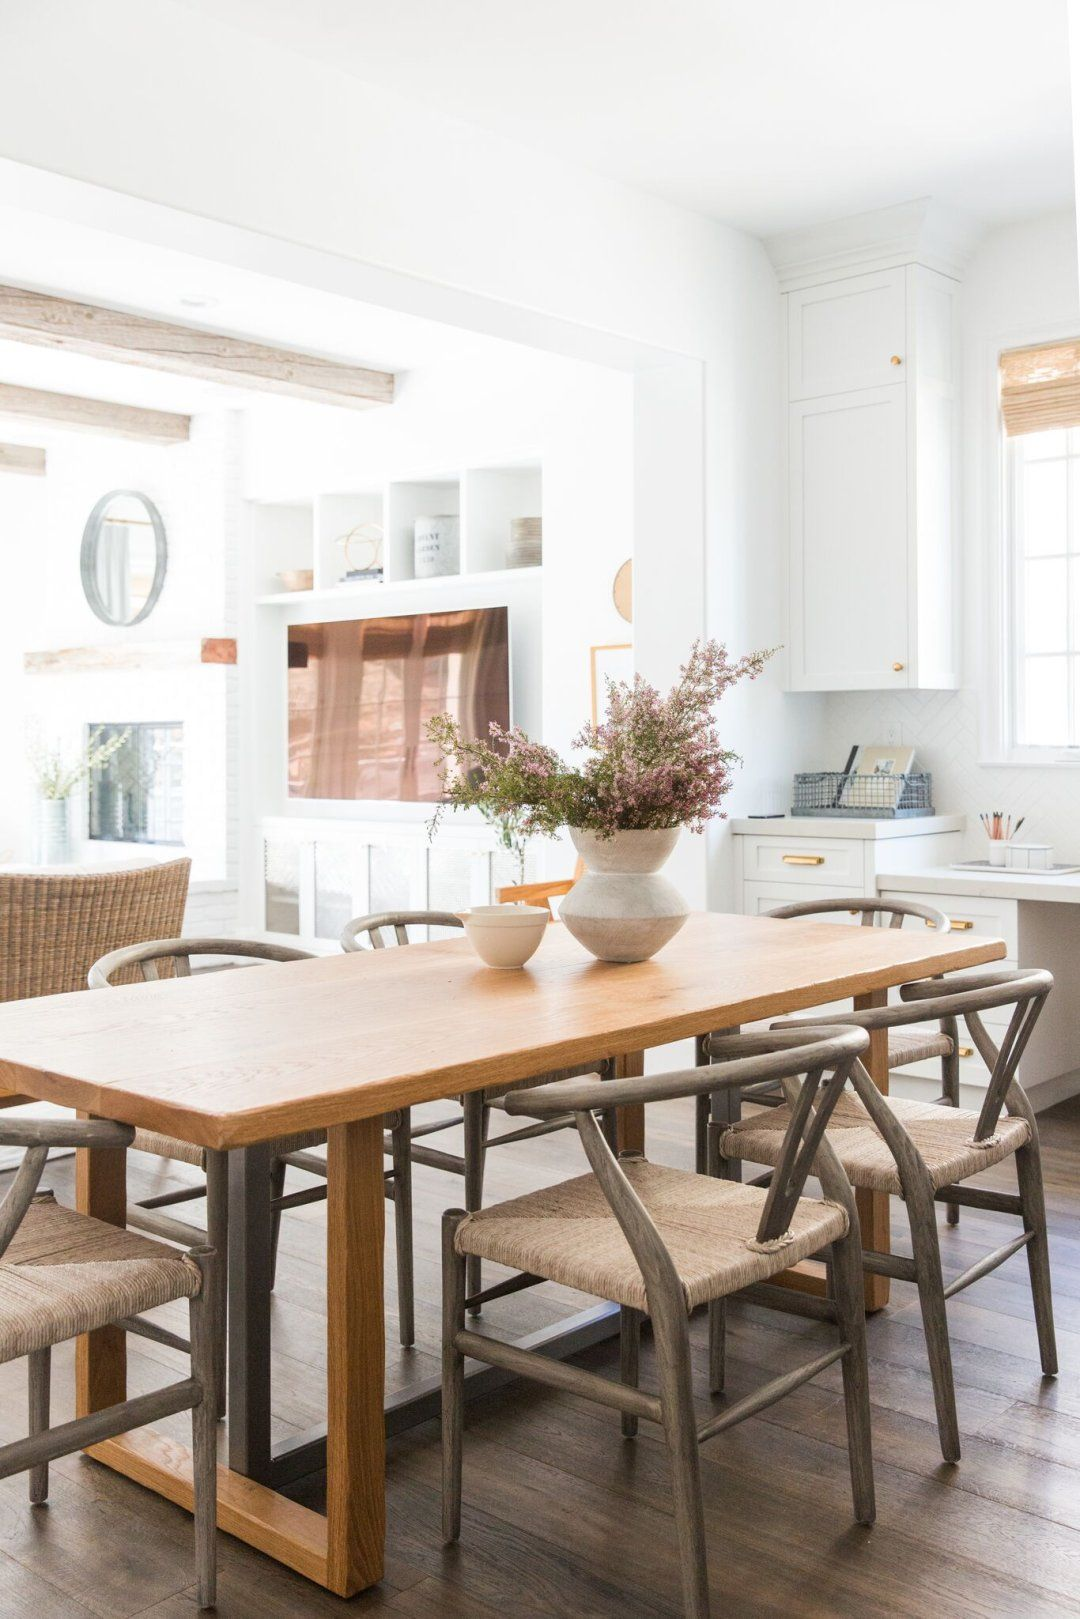 Calabasas Remodel: Kitchen + Laundry Room Reveal | Remodeled ...